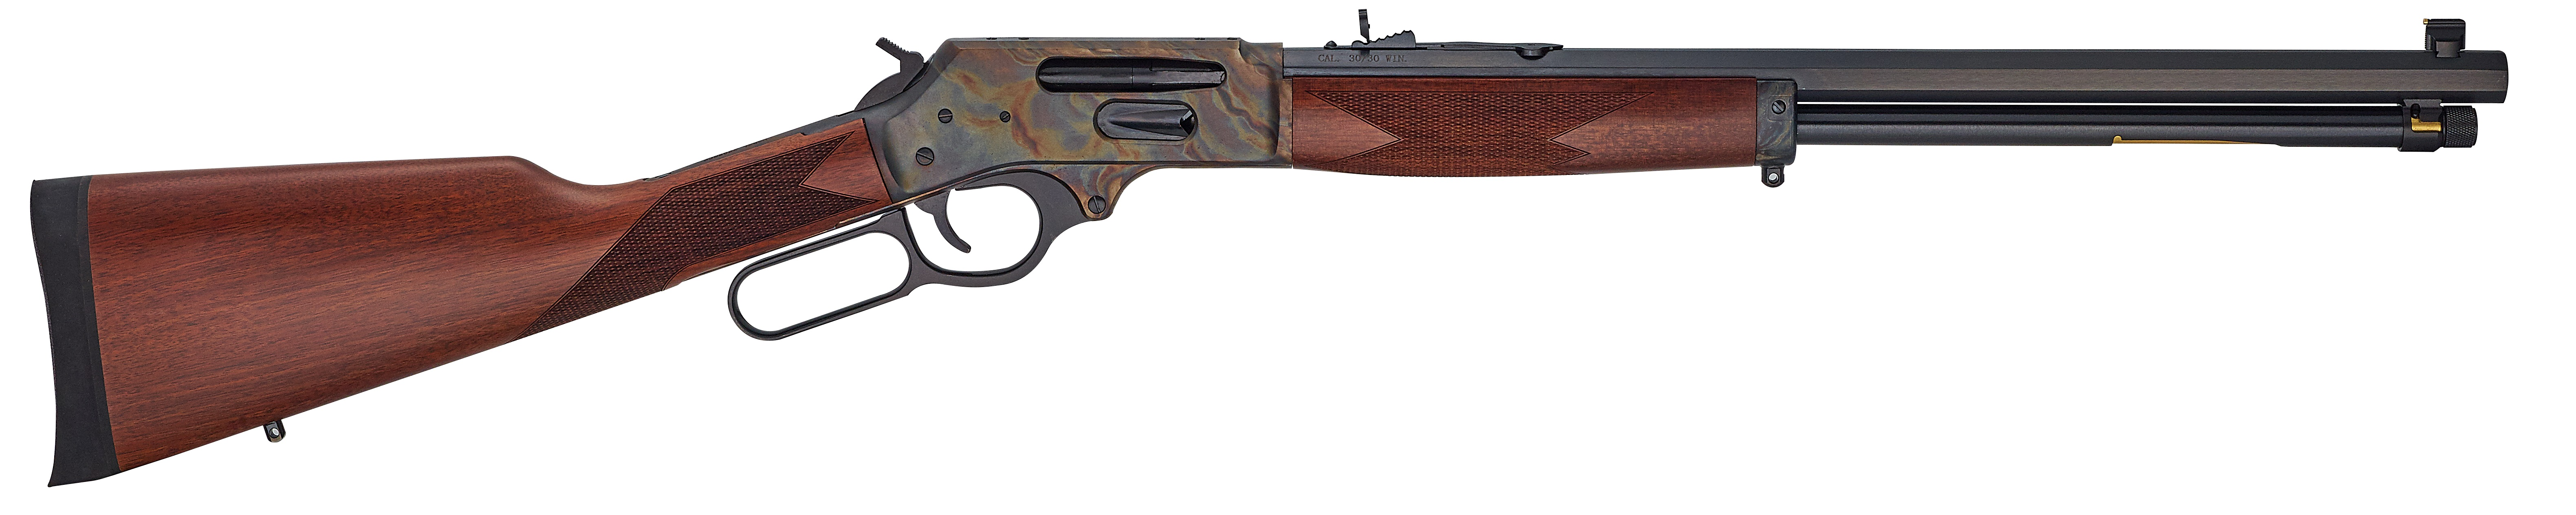 Henry Repeating Arms 30-30 LEVER COLOR CSE HARDENED 30-30